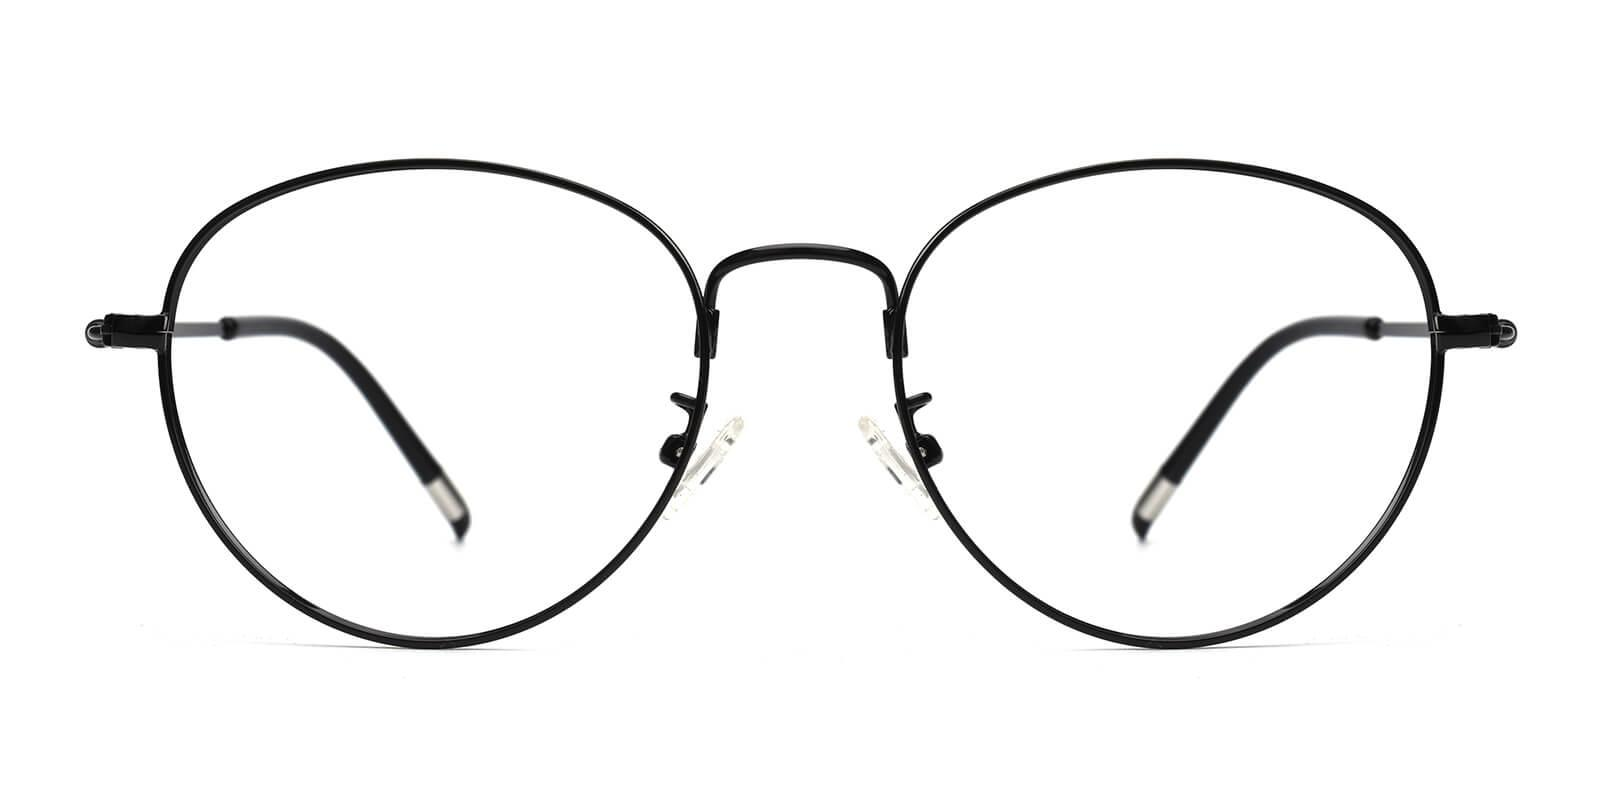 Sadie-Black-Round-Metal-Eyeglasses-detail